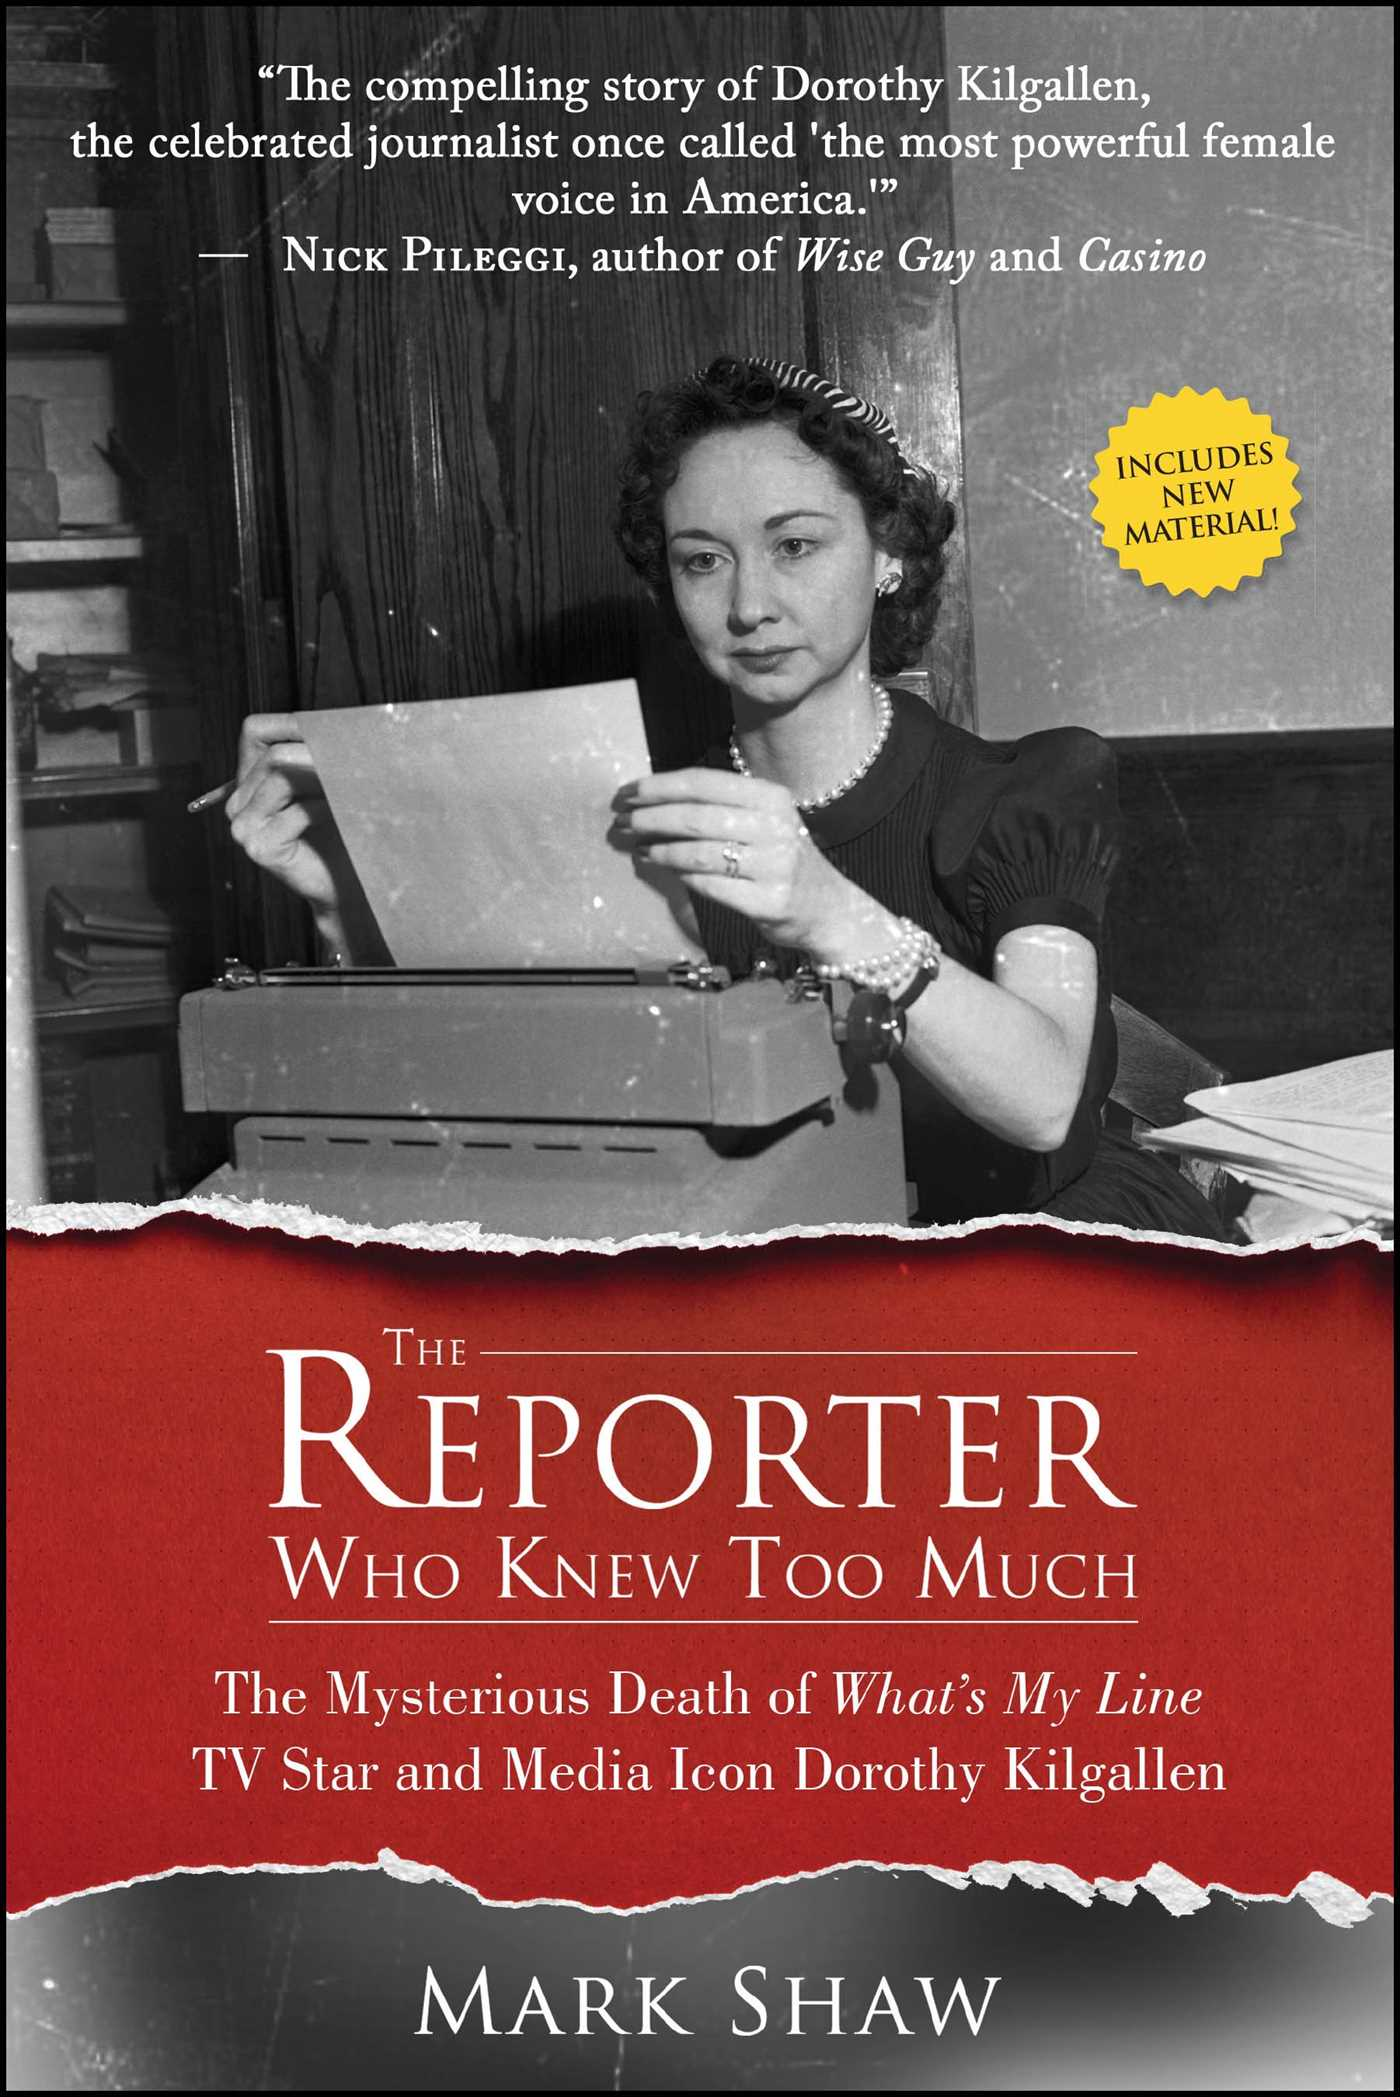 The reporter who knew too much 9781682614433 hr